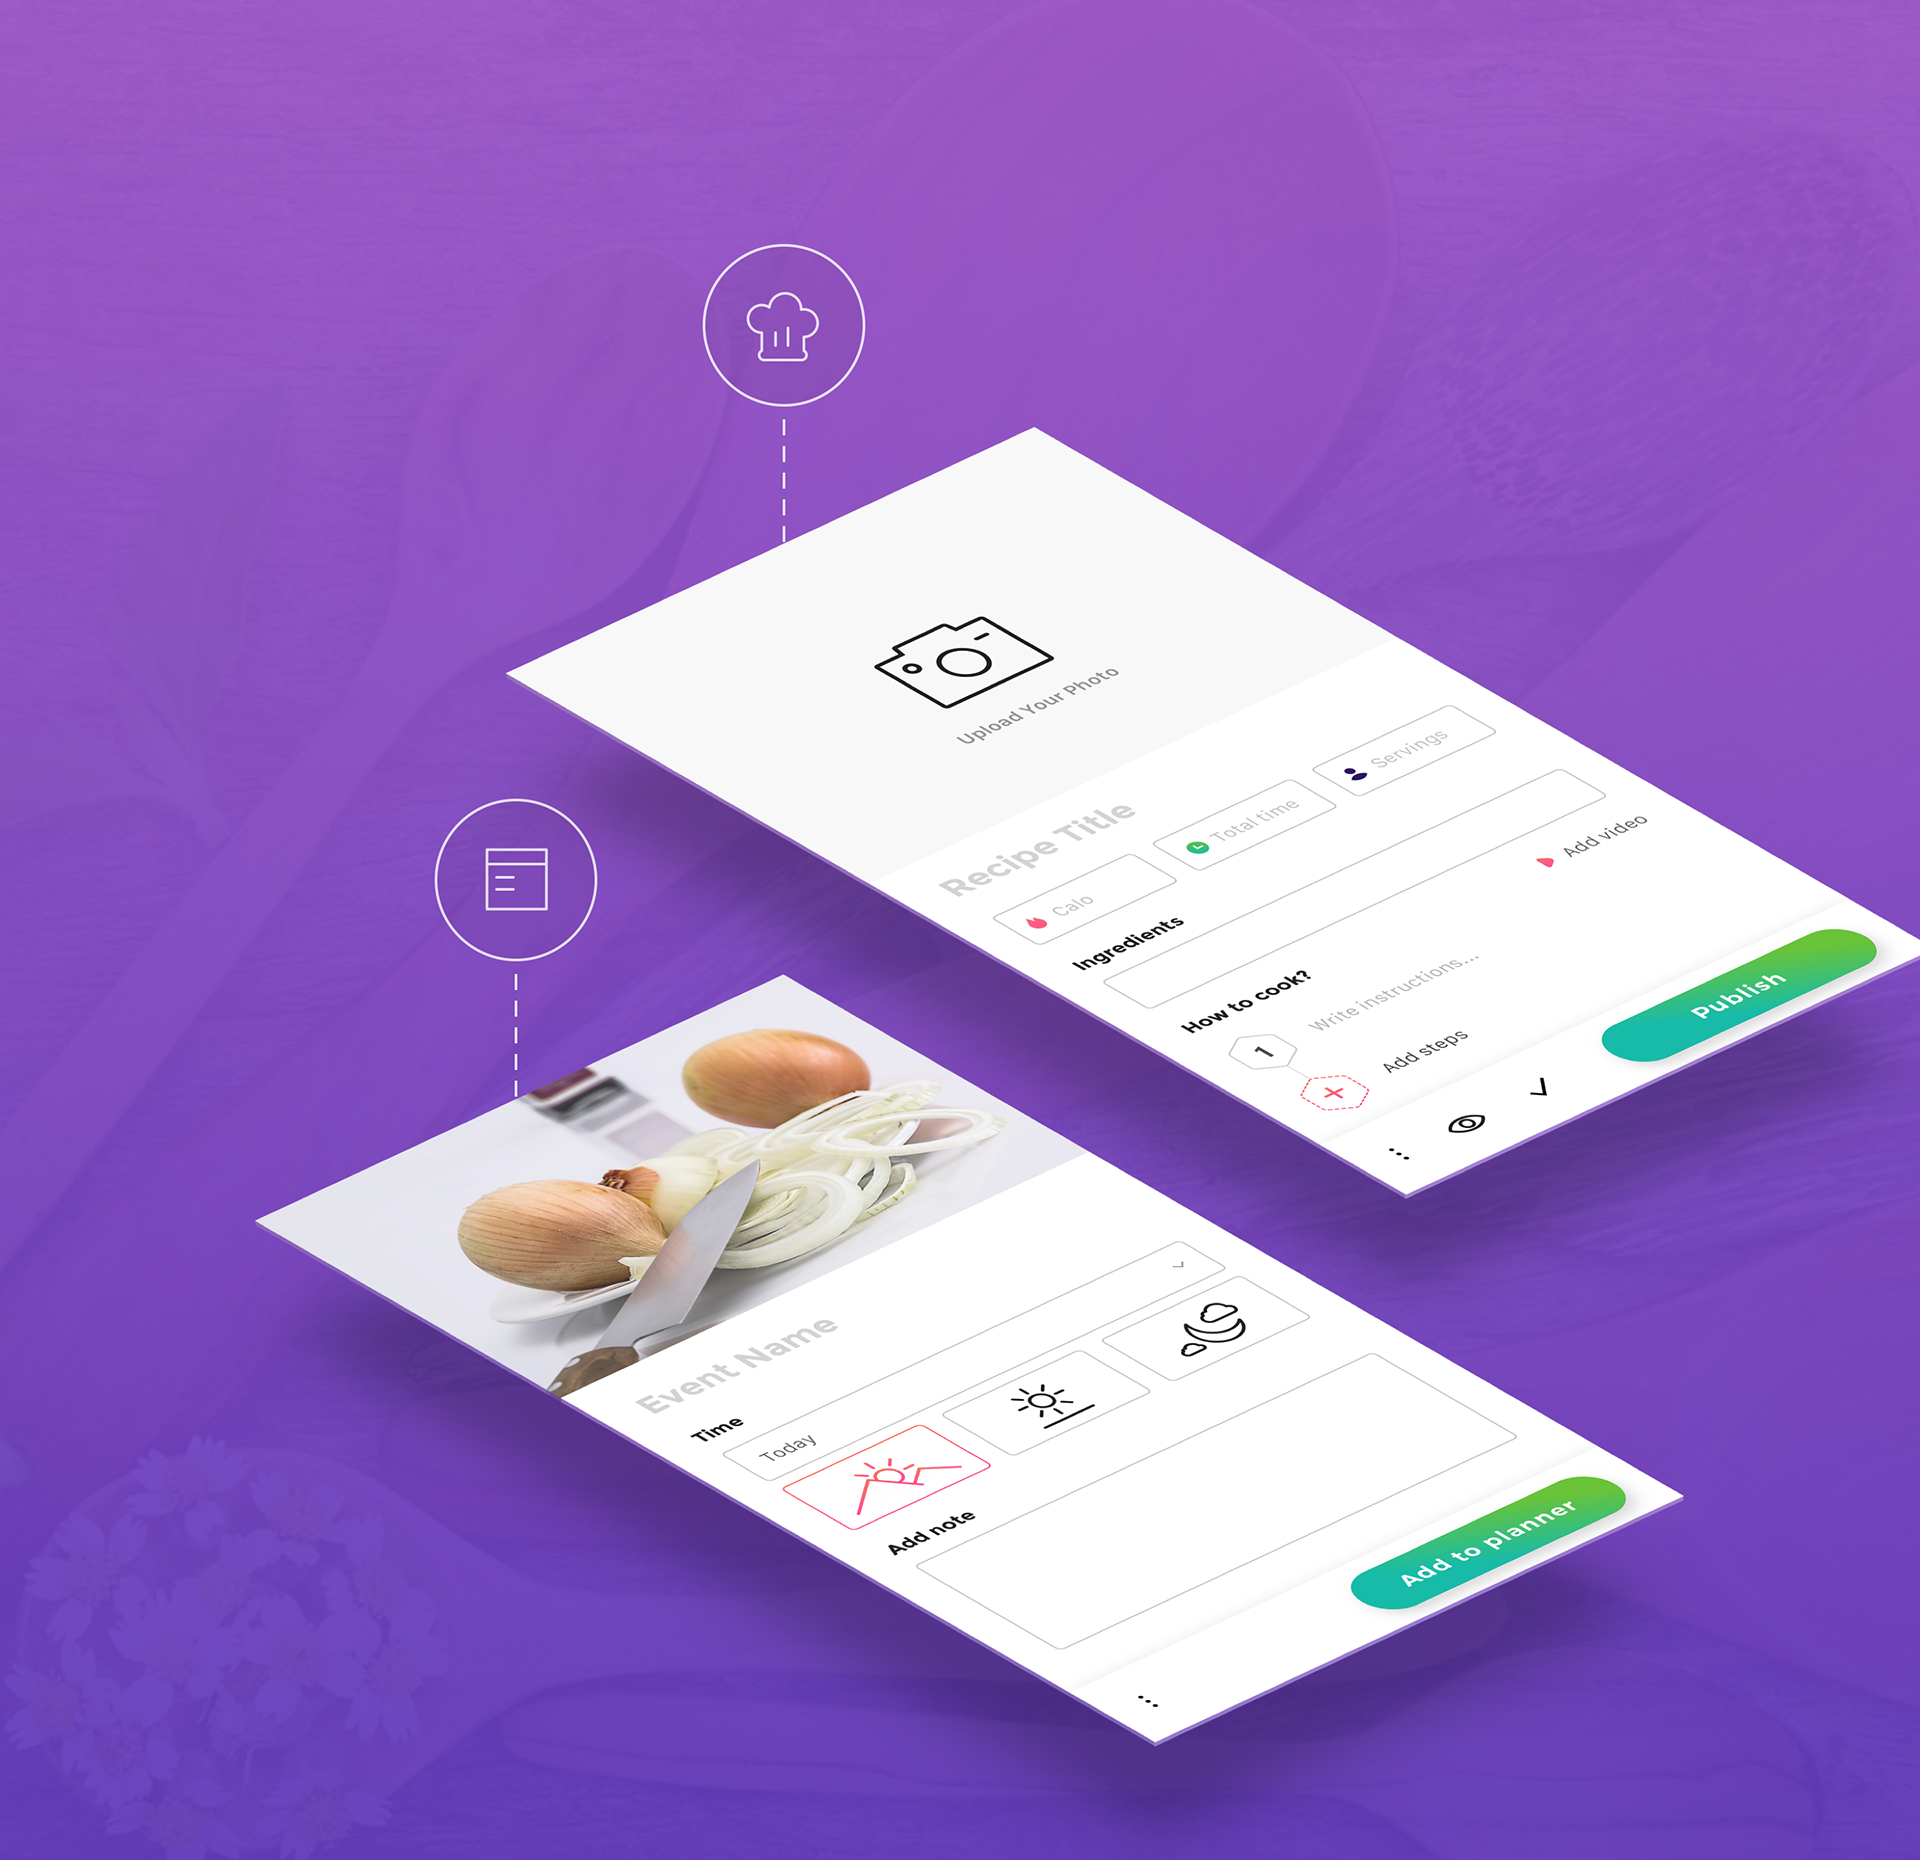 Interaction Design & UI/UX of the Ecook App Concept